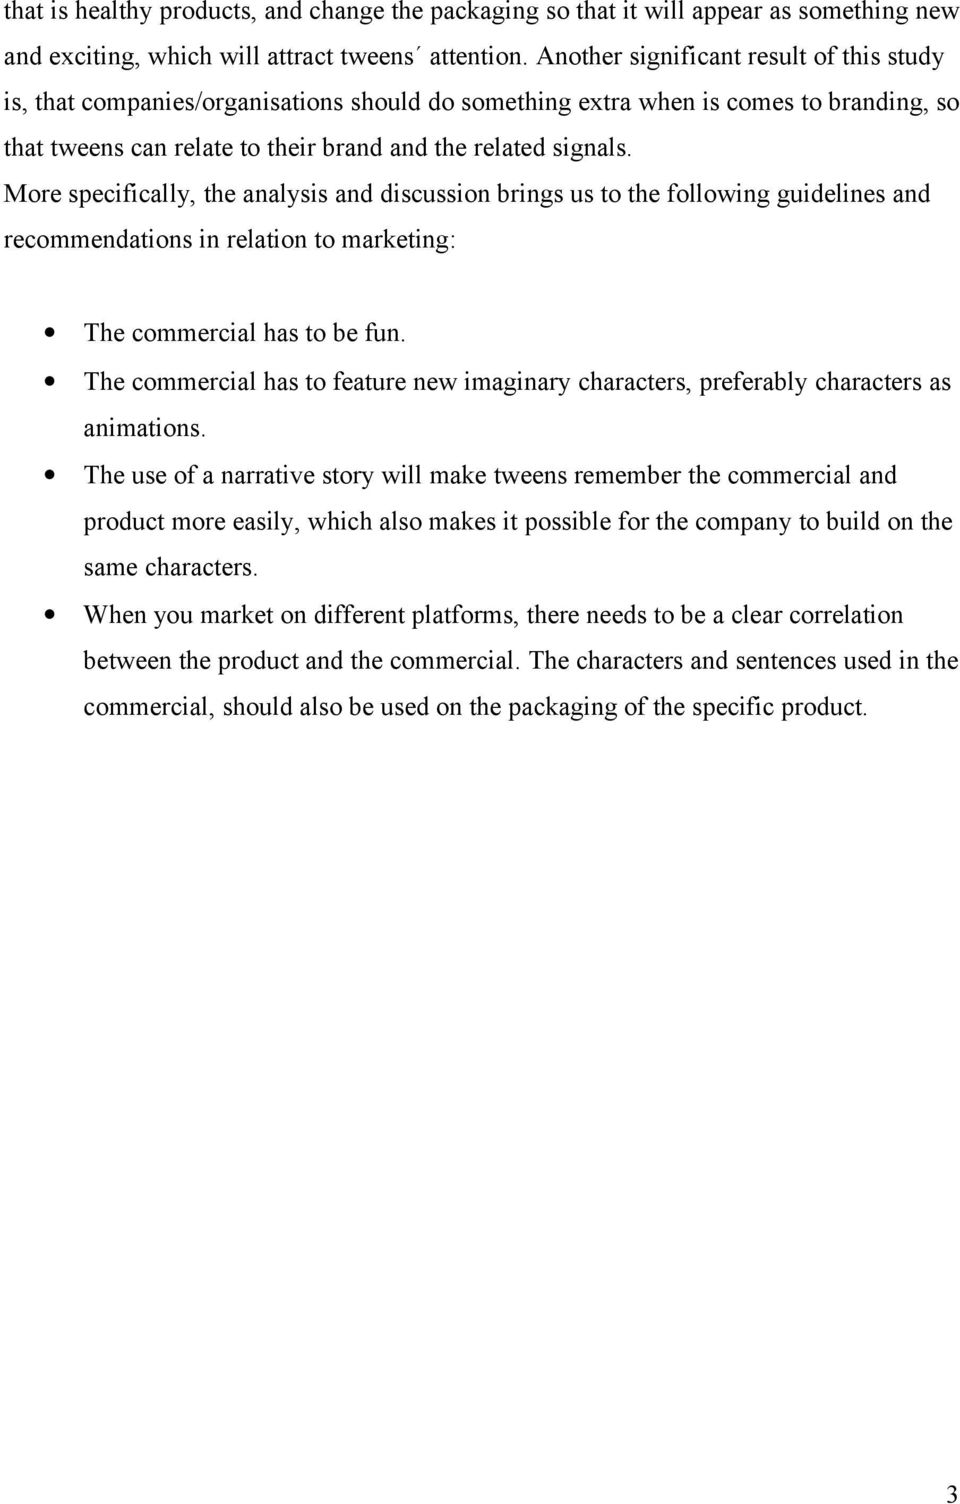 More specifically, the analysis and discussion brings us to the following guidelines and recommendations in relation to marketing: The commercial has to be fun.